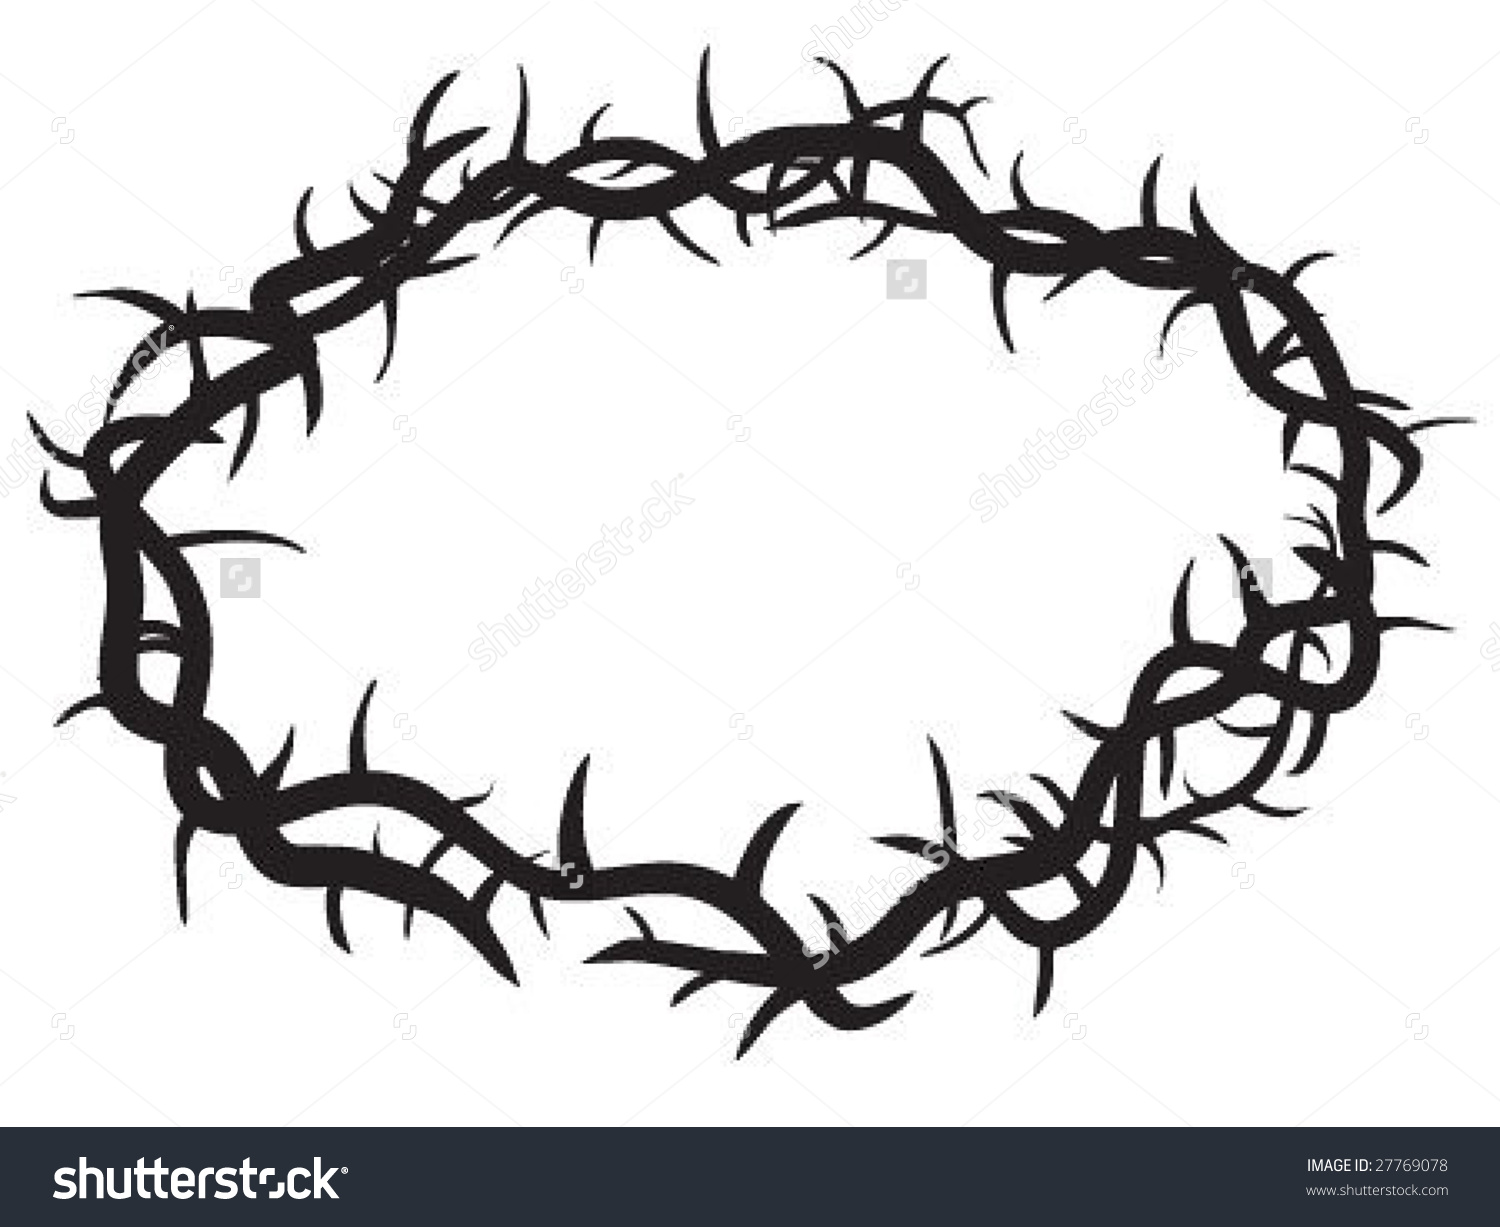 1500x1227 Free Clipart Crown Of Thorns